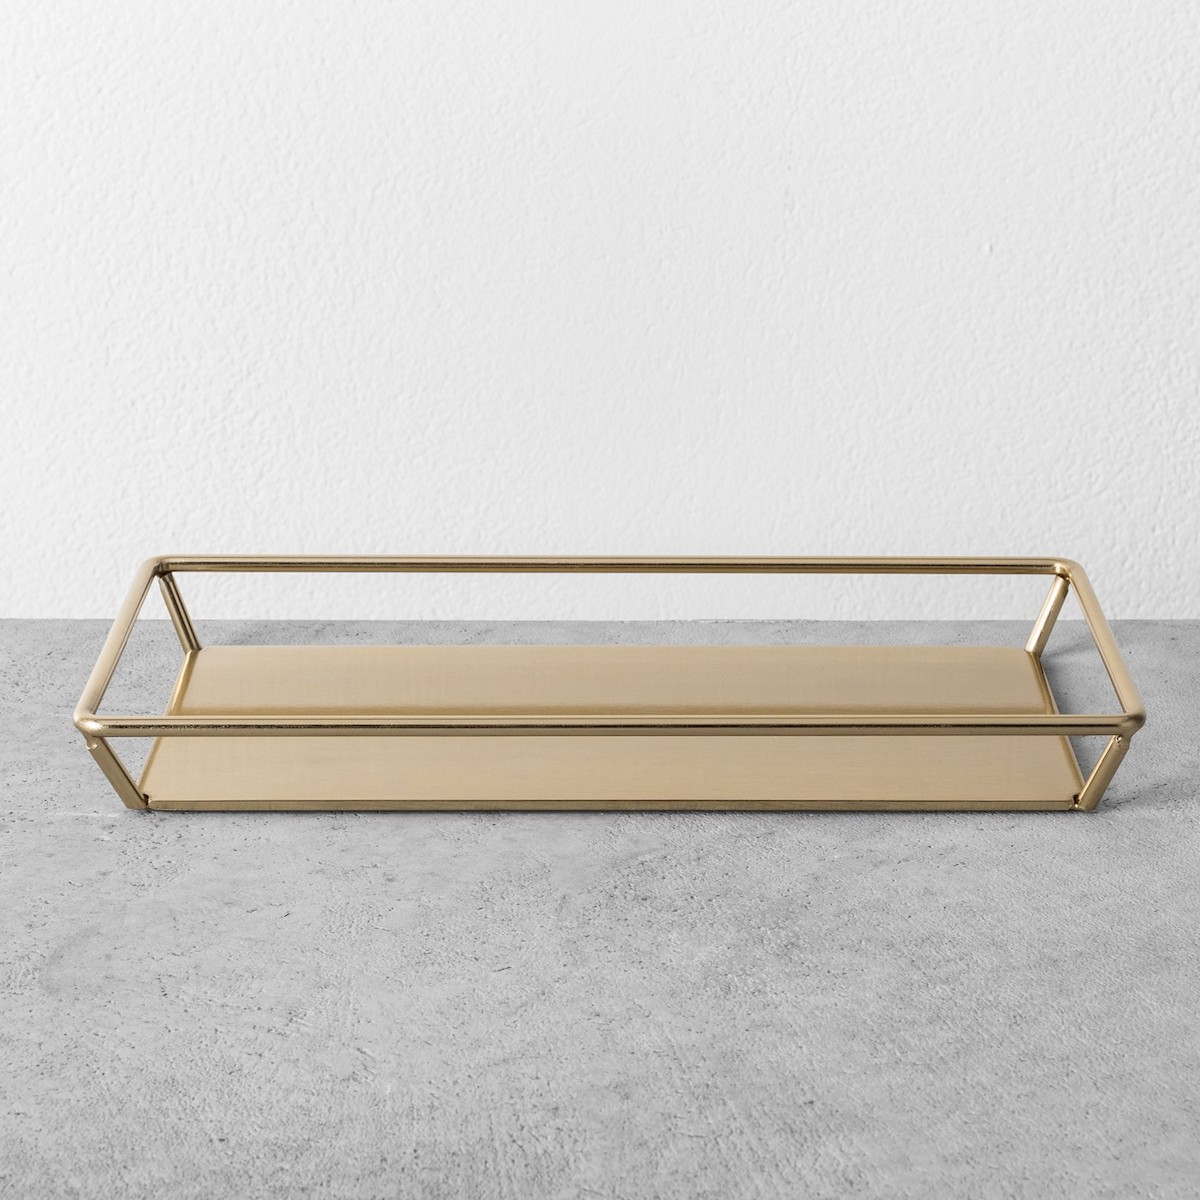 Joanna Gaines Target Fall Collection, brass bathroom tray